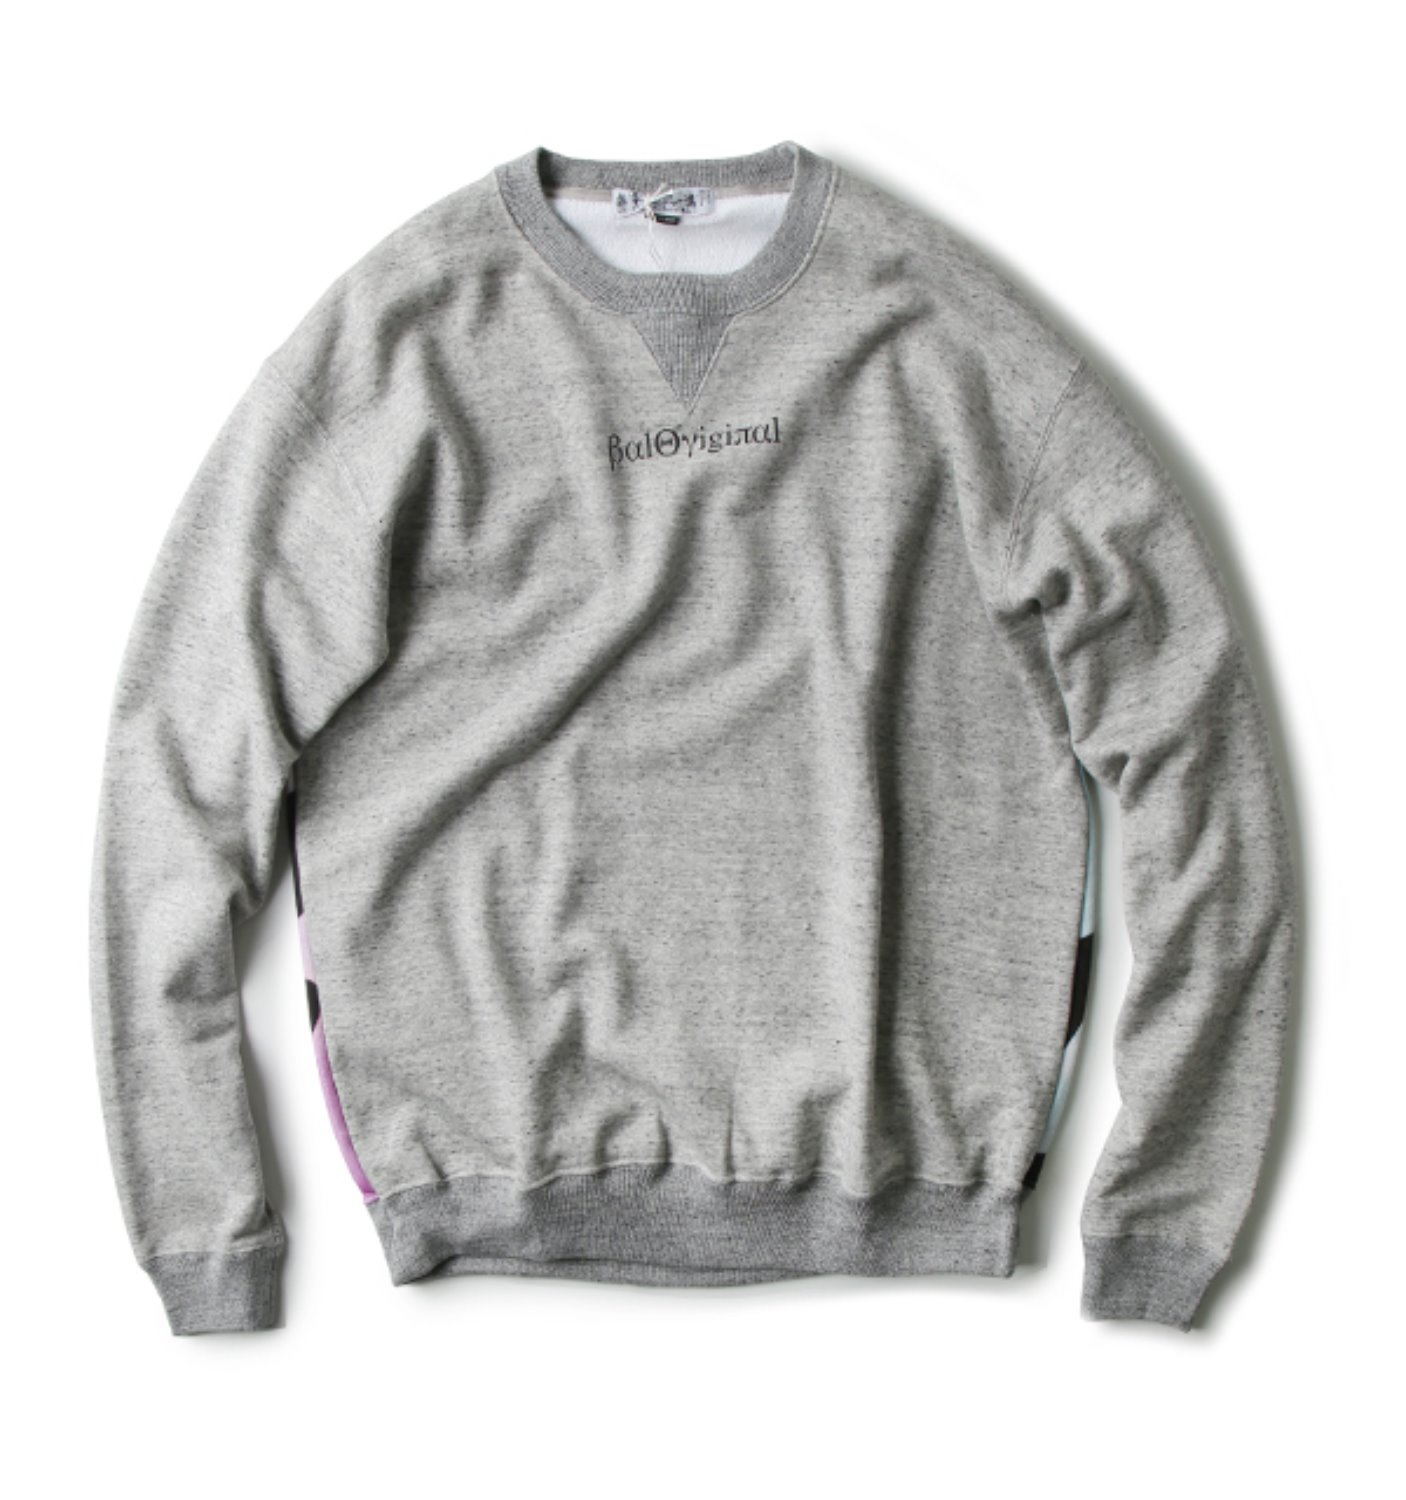 CREWNECK SWEATSHIRT GREY(BAL-1683)